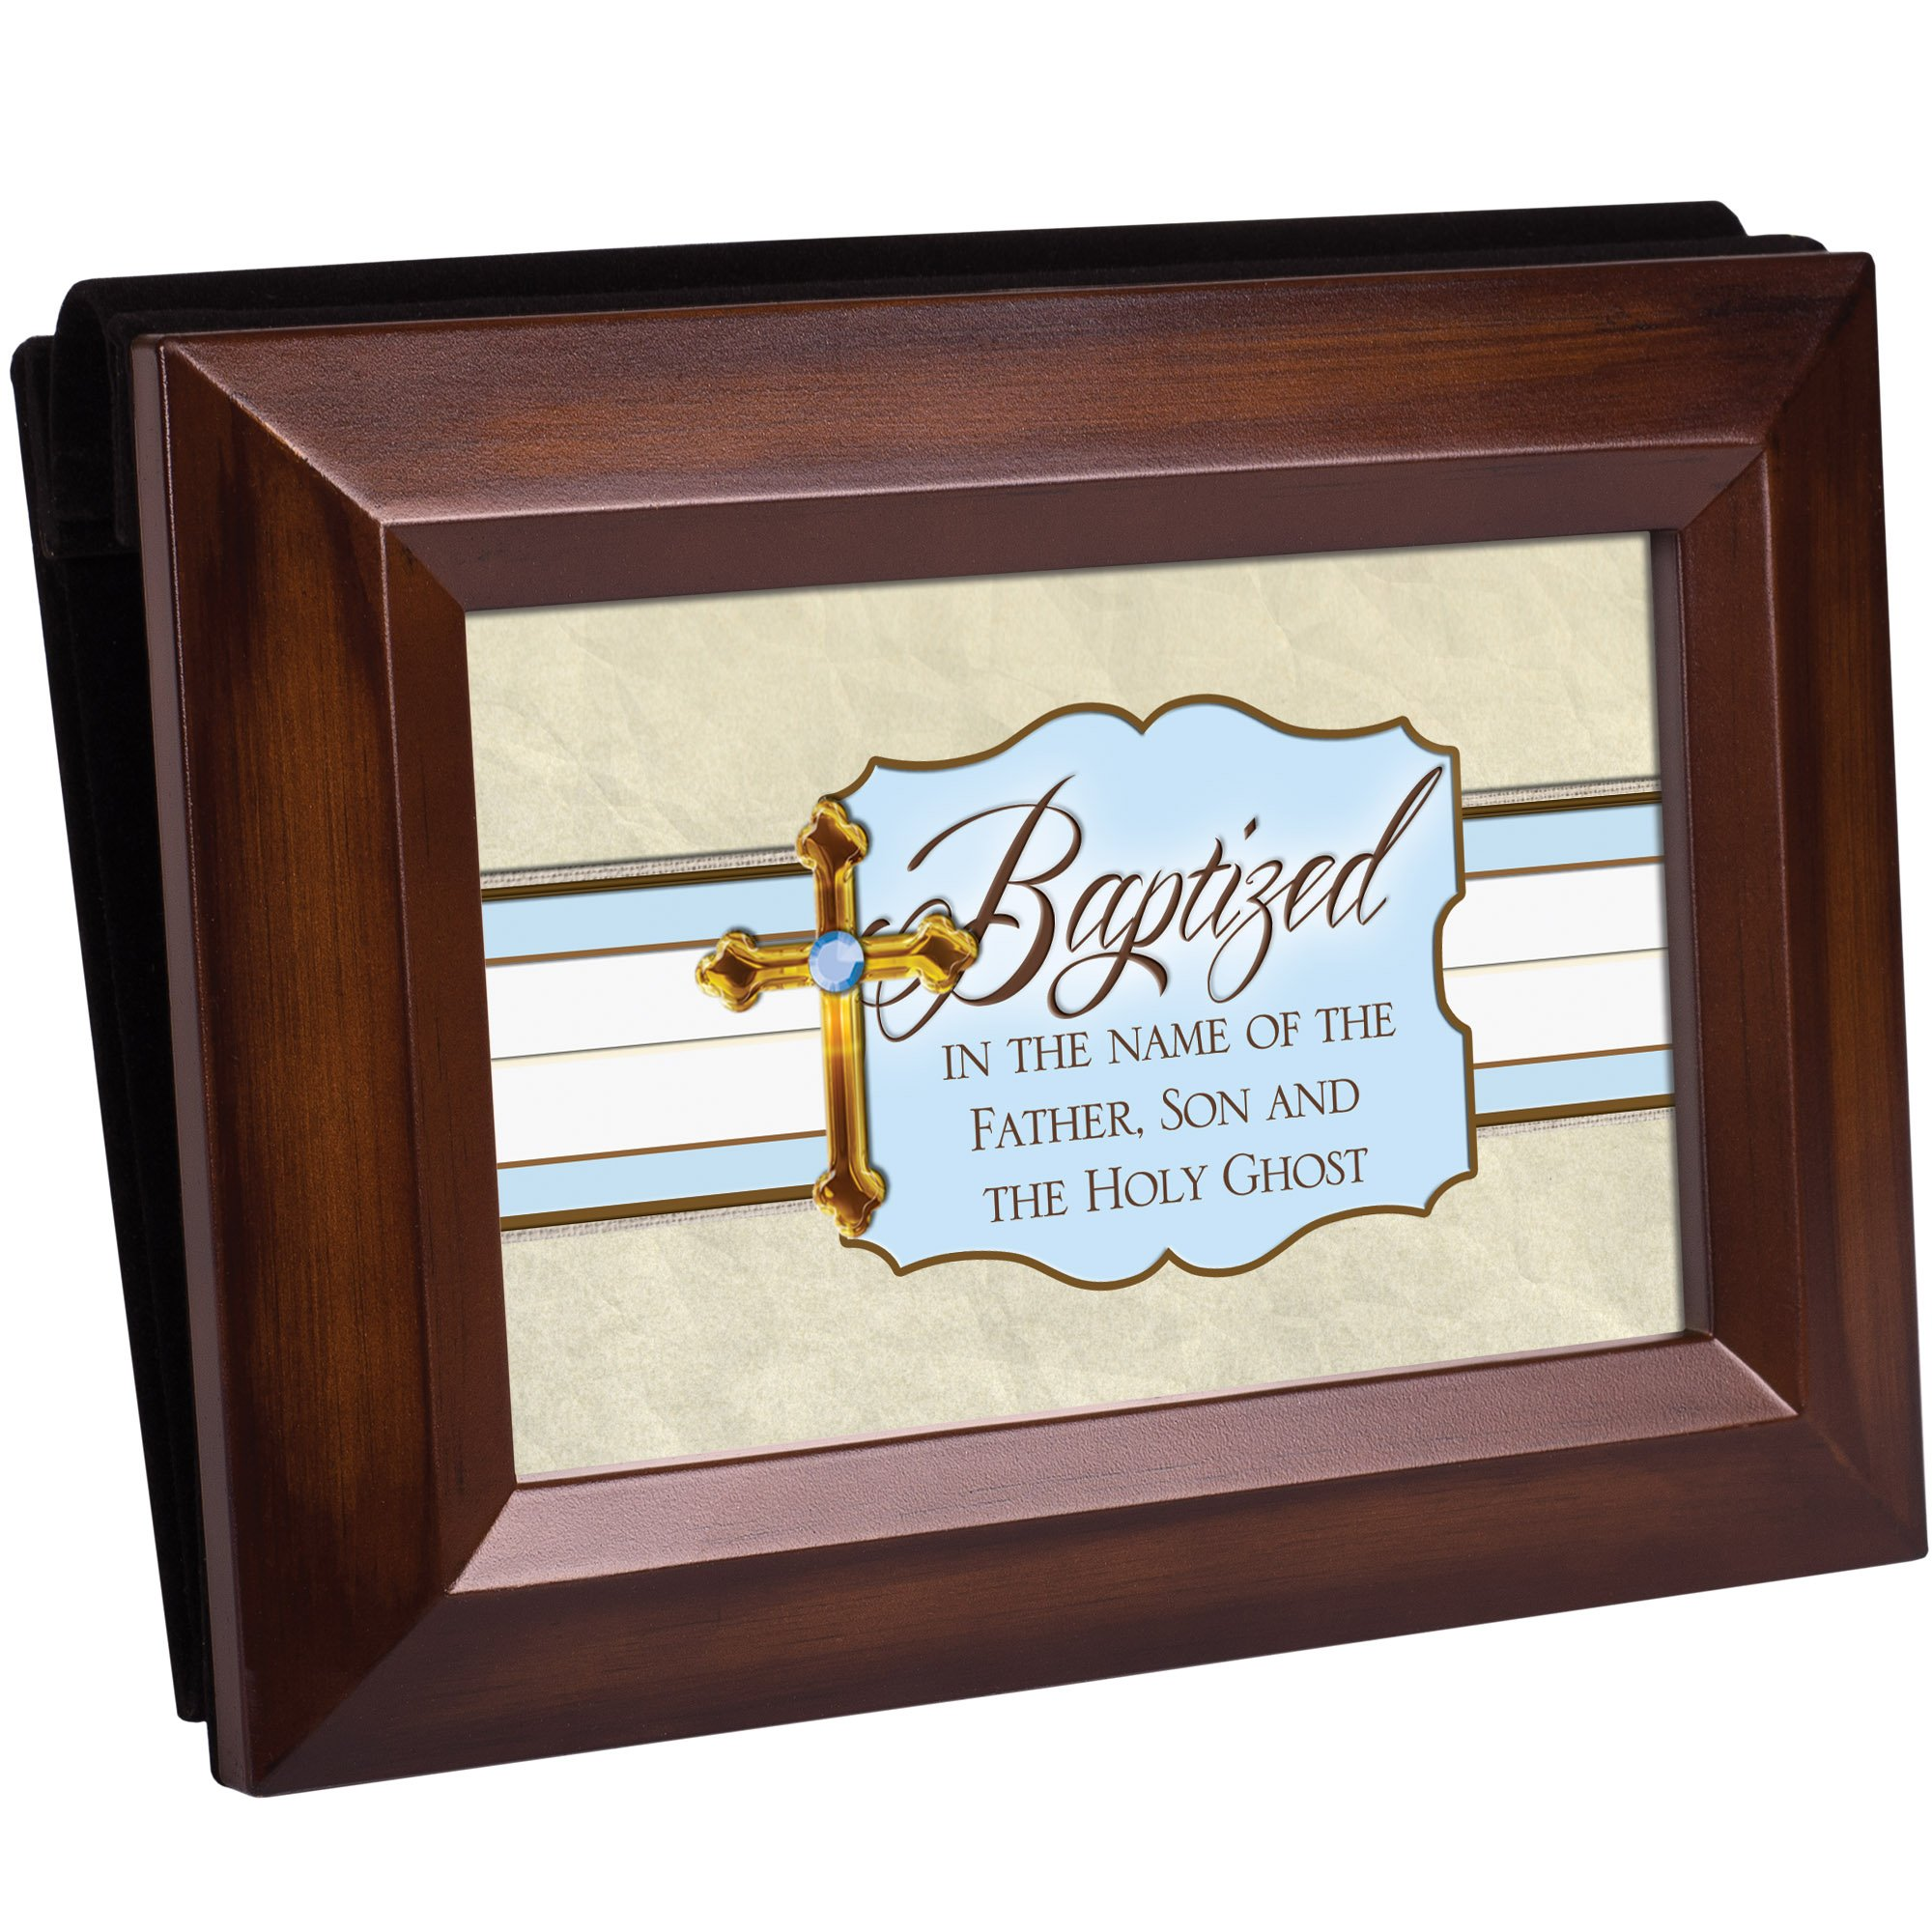 Baptized in the Name of the Father, Son & Holy Ghost Wood Finish 4x6 Photo Album with Easel Back - Holds 50 Photos Acid Free